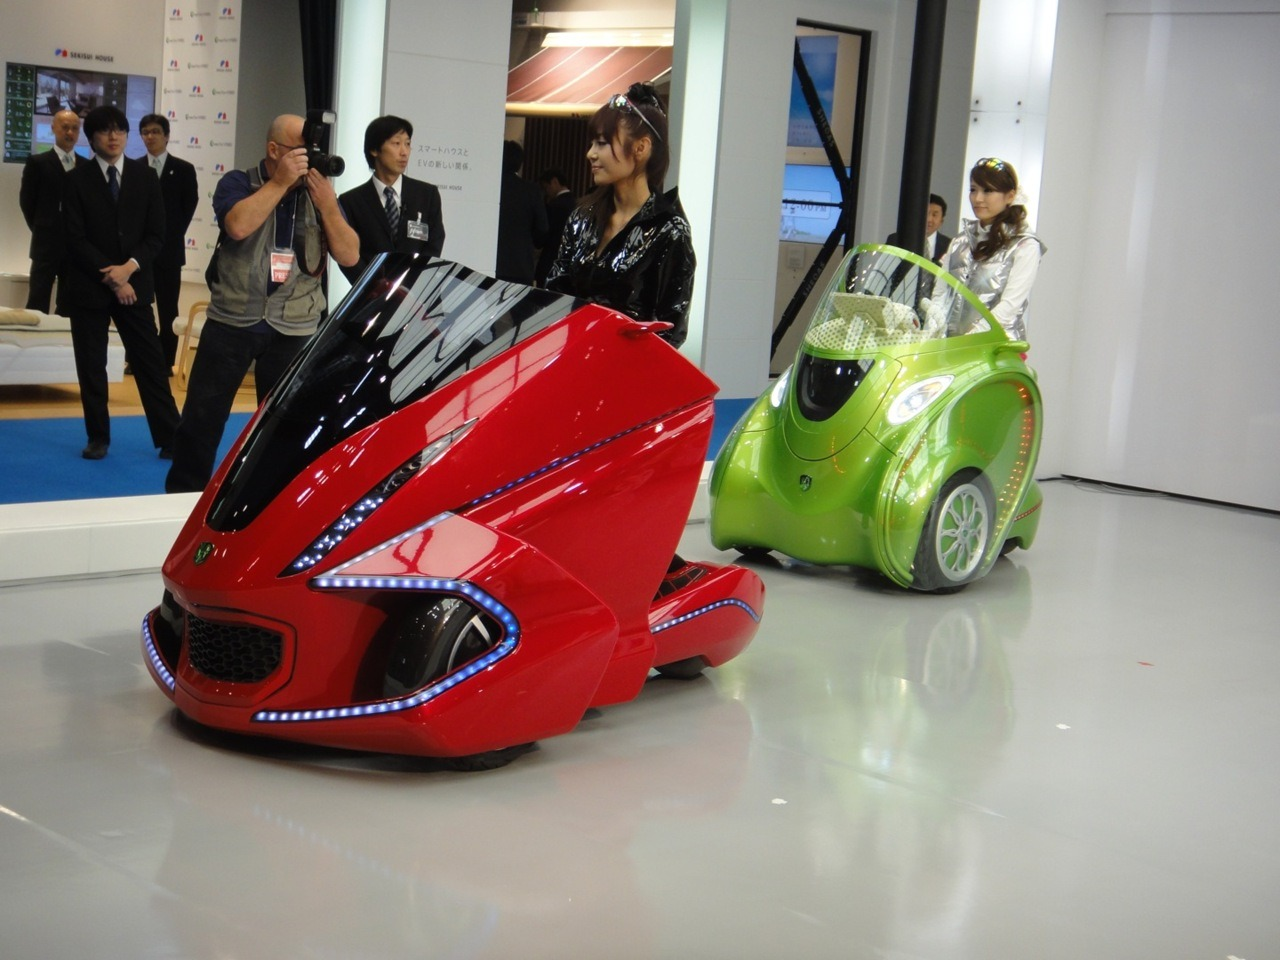 """KOBOT City EV Concept Vehicle Transforms With The Push Of A Button"" The Kobot is developed by Kowa Tmsuk, a new company formed by Kowa, a  medical instrument manufacturer, and Tmsuk, a robot manufacturer. Kowa  Tmsuk isn't just developing vehicle hardware, they are also proposing  new ways of using their technology for communal car sharing in urban  areas."